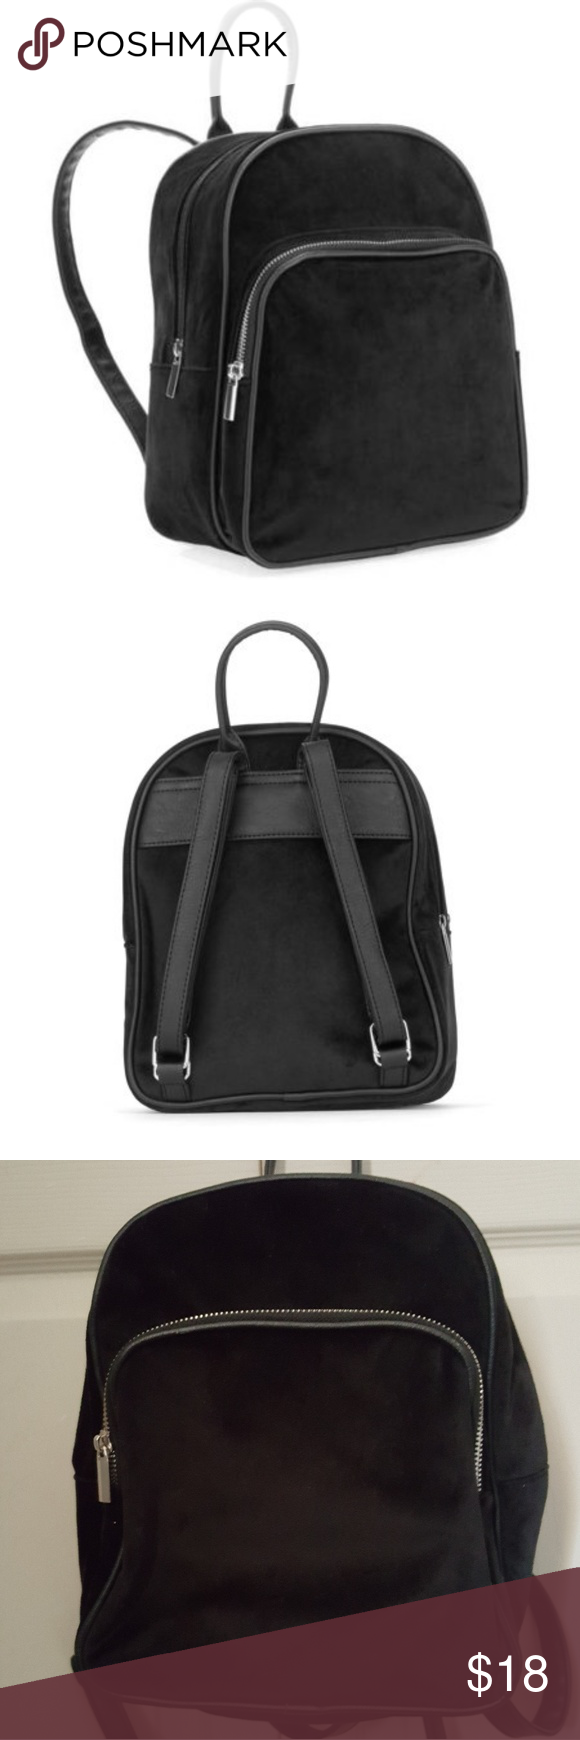 645ab8abd2a5 No Boundaries Velvet Suede Mini Backpack   Gently used and in good  condition. No tears